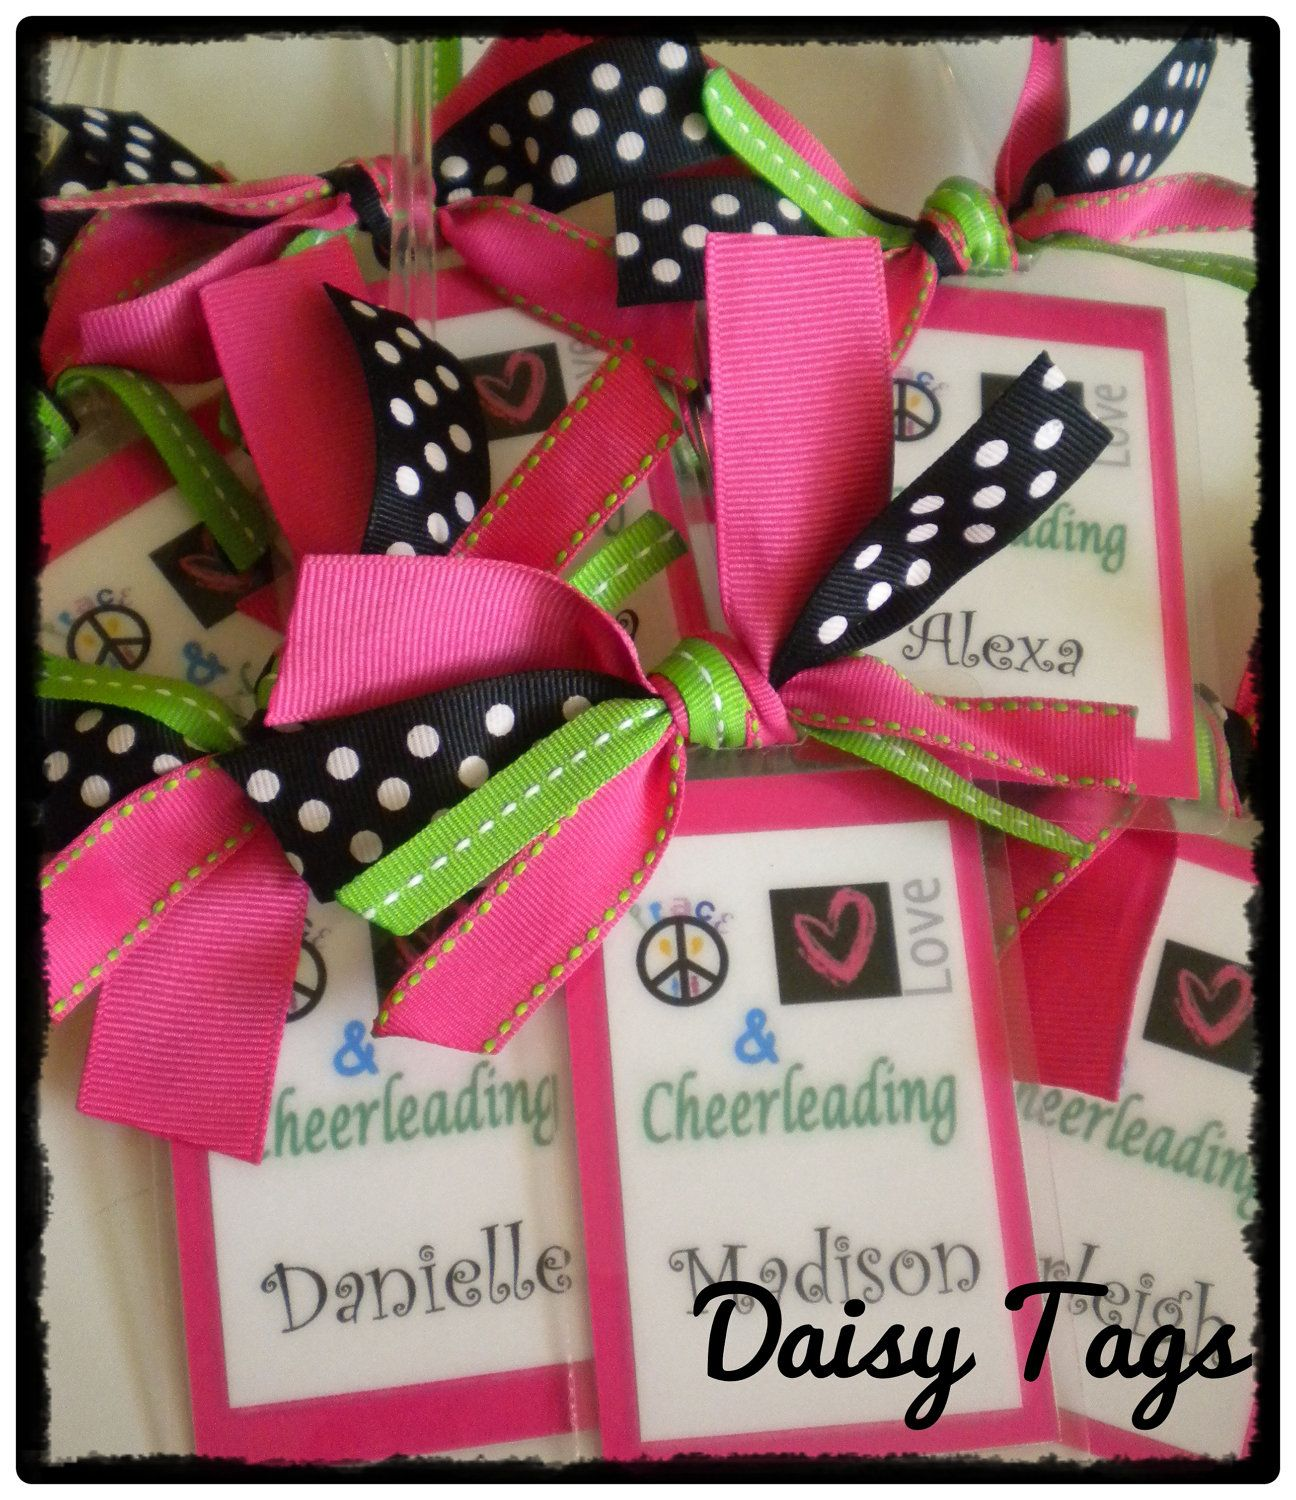 Peace Love Cheerleading Bag Tag Cusomized For You Or Cheer Dance Team